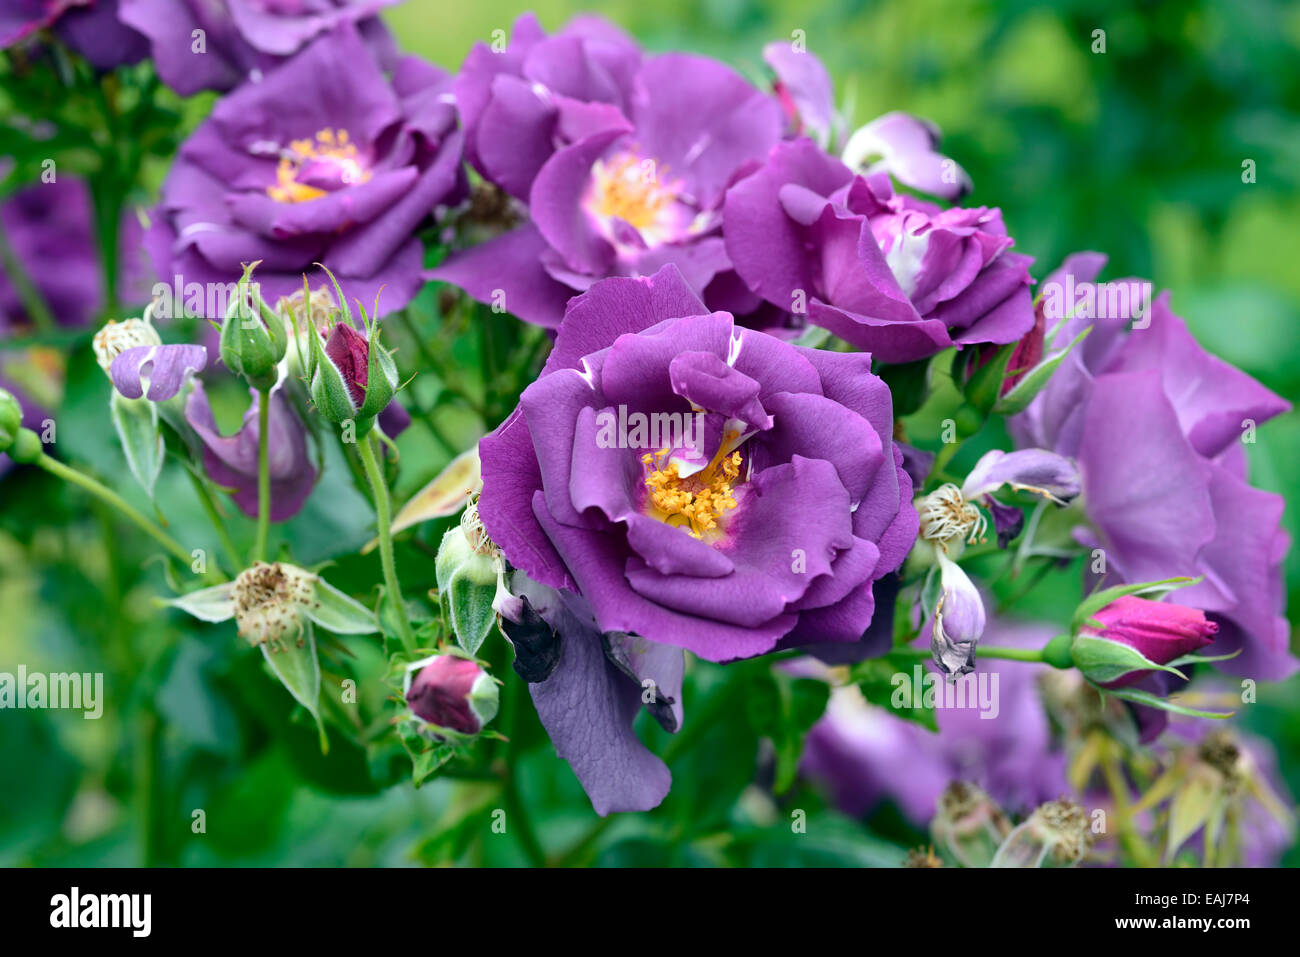 rosa rhapsody in blue frantasia rose purple flower flowers bloom stock photo royalty free image. Black Bedroom Furniture Sets. Home Design Ideas